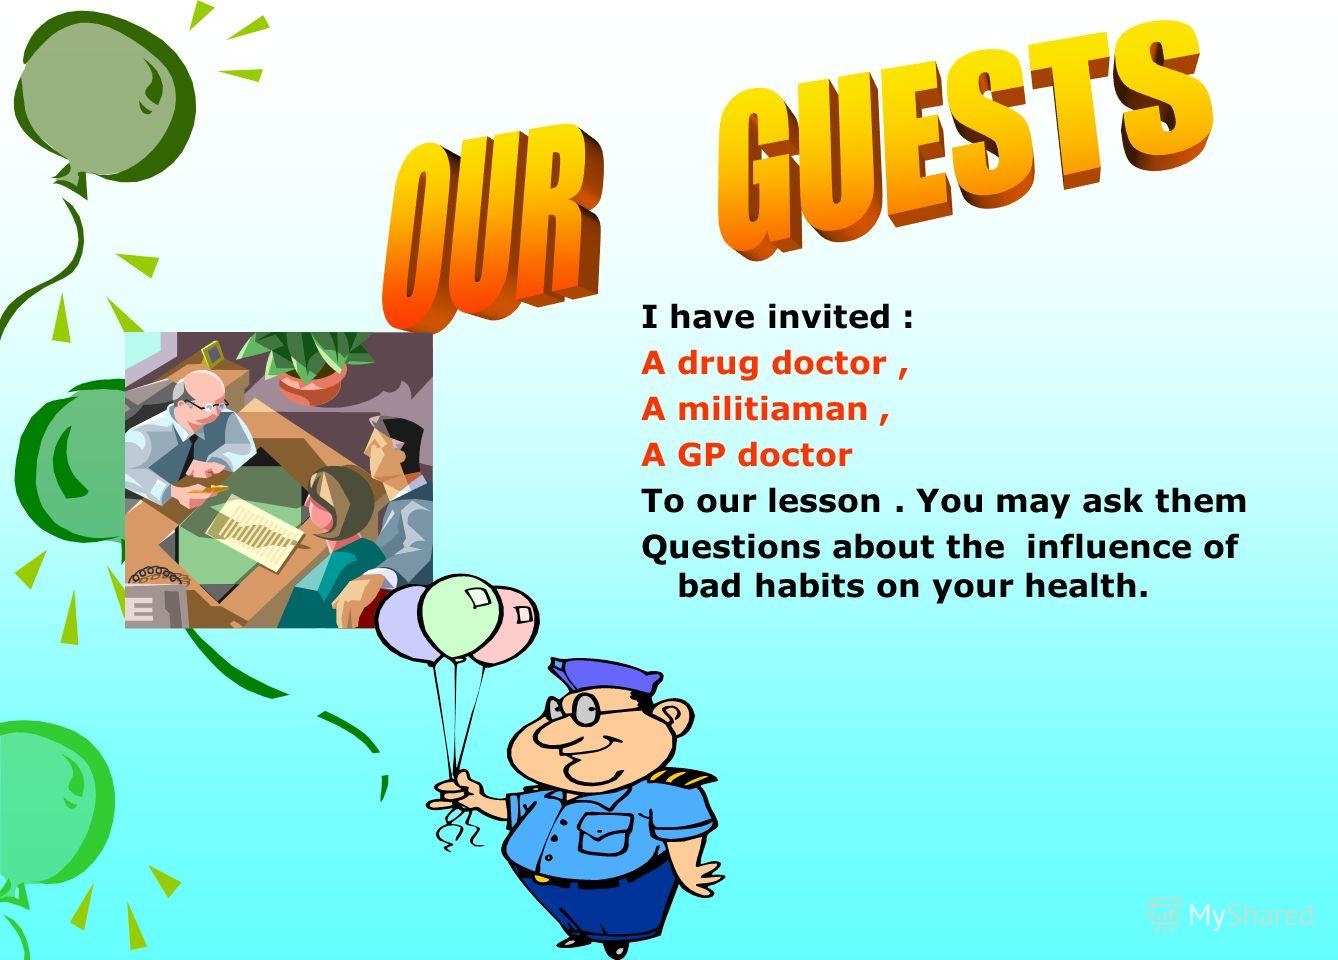 I have invited : A drug doctor, A militiaman, A GP doctor To our lesson. You may ask them Questions about the influence of bad habits on your health.